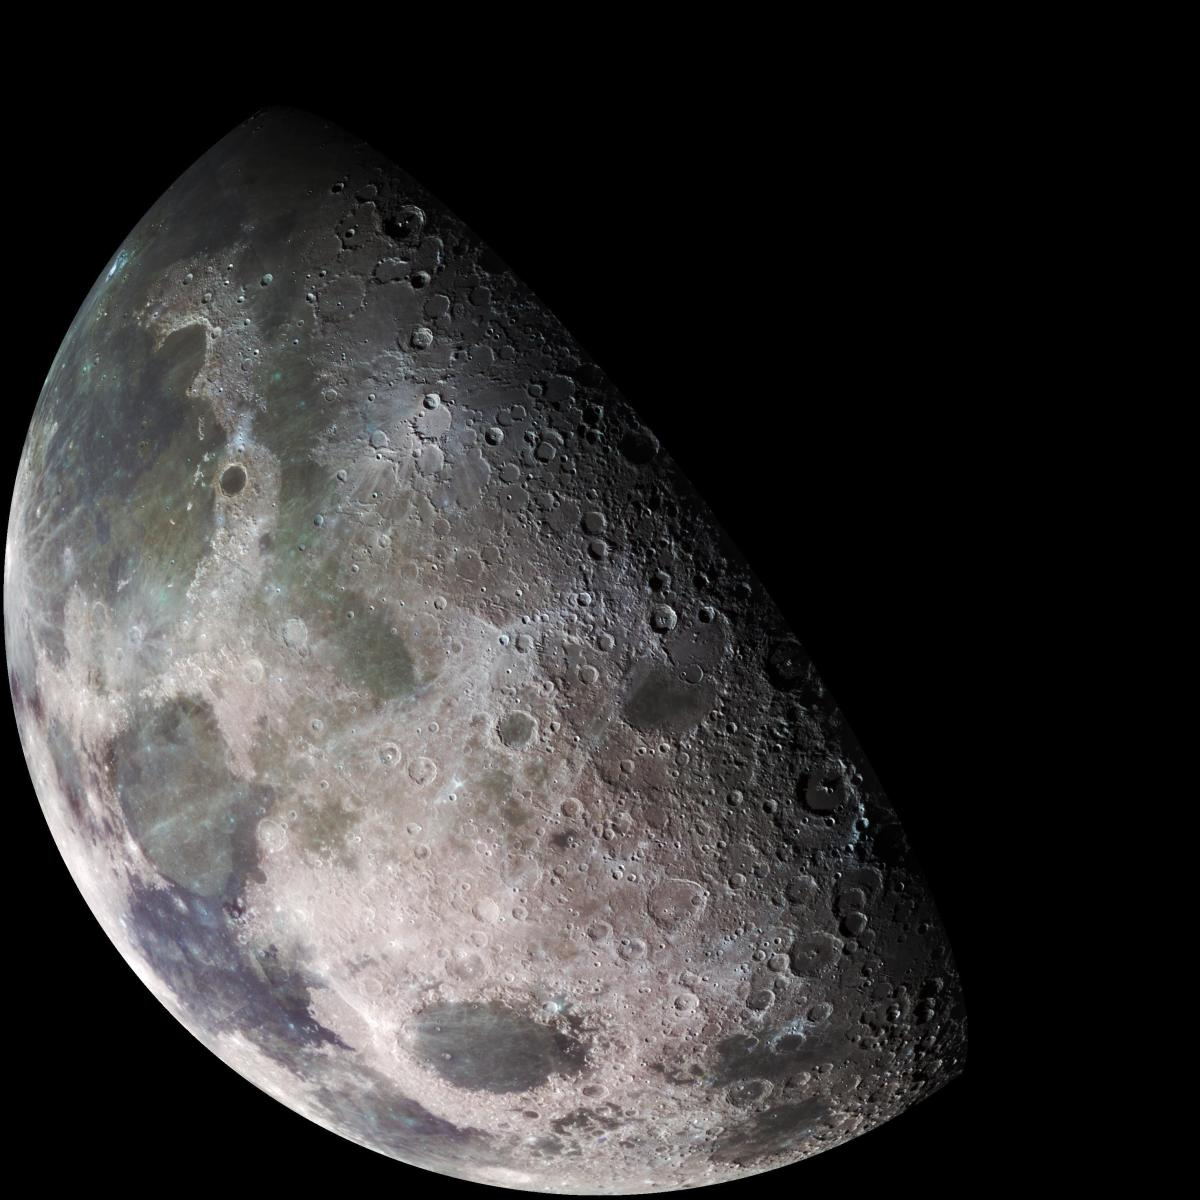 The view of a half moon up close.